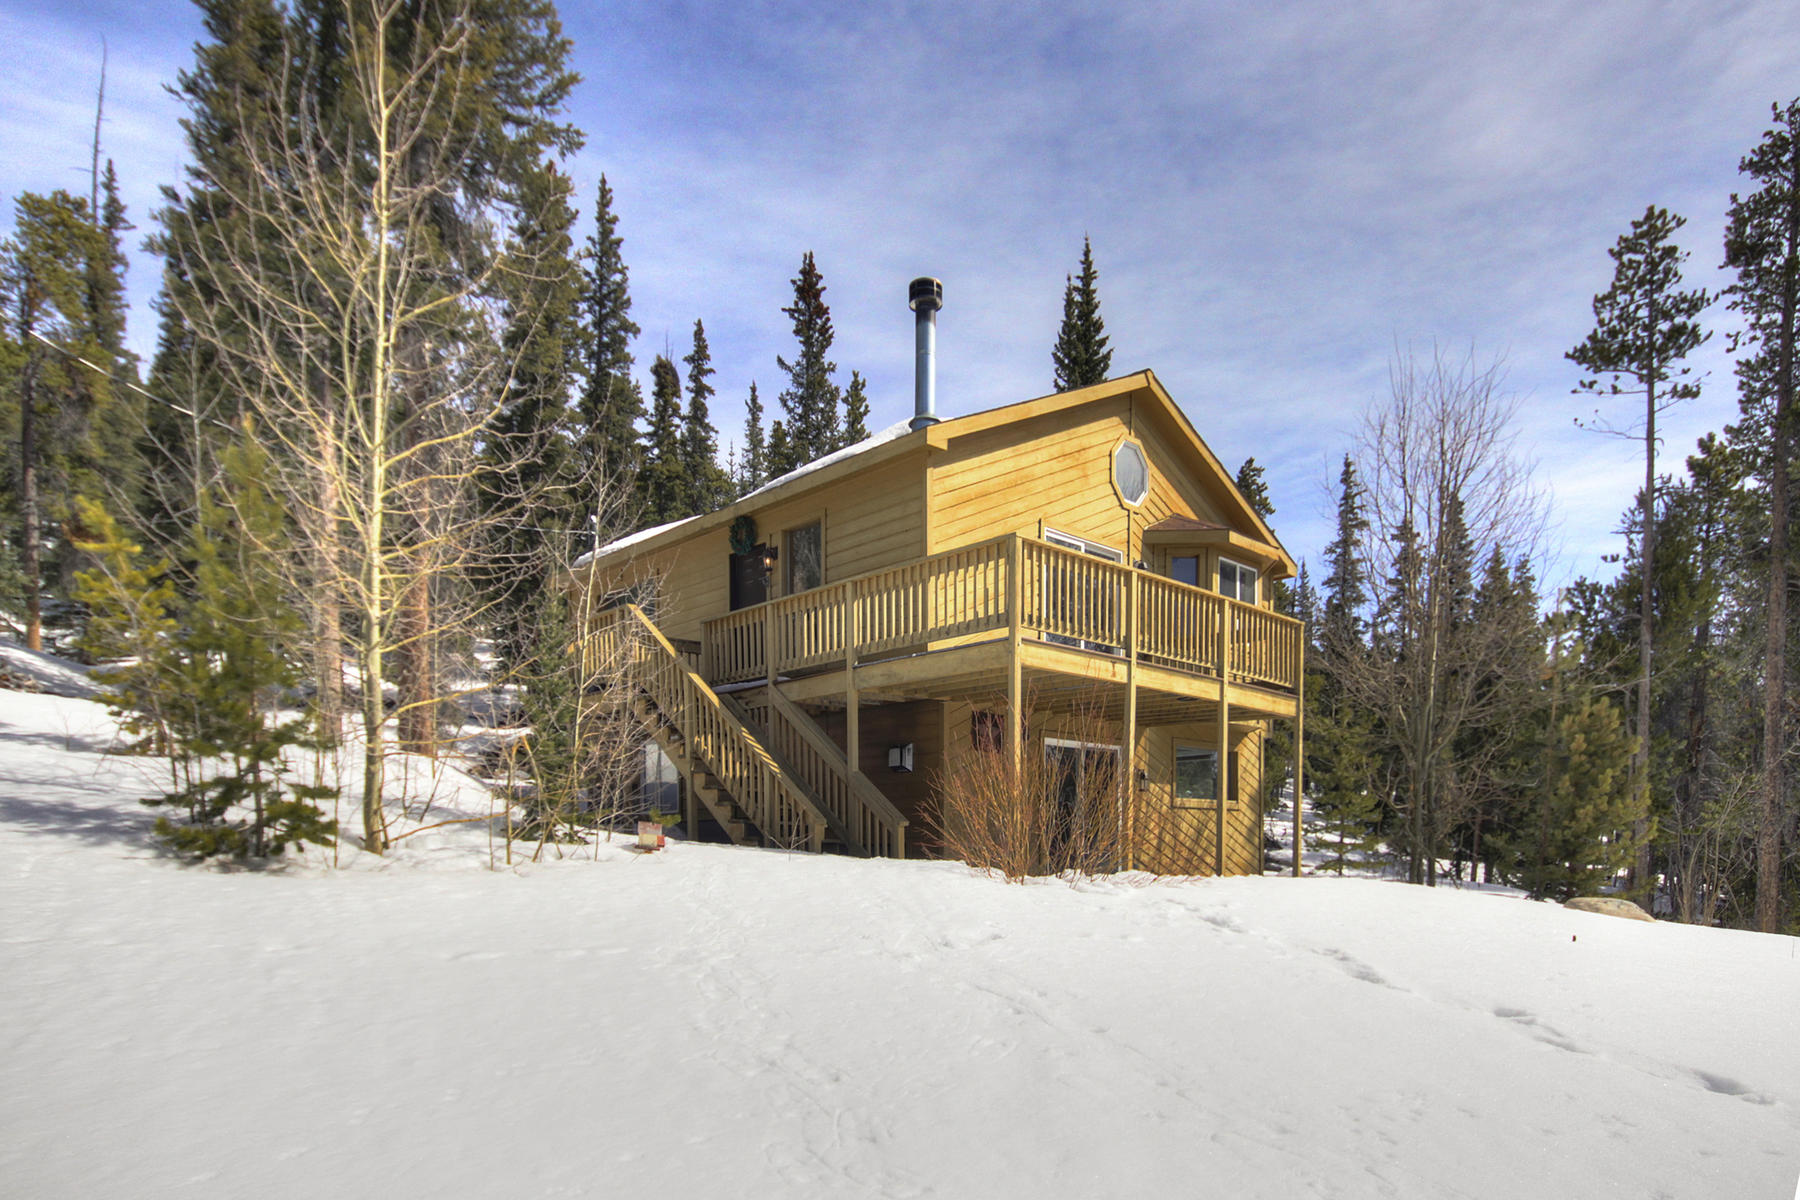 Single Family Homes for Sale at Cabin in the Mountains 3371 S Nugget Road Fairplay, Colorado 80440 United States